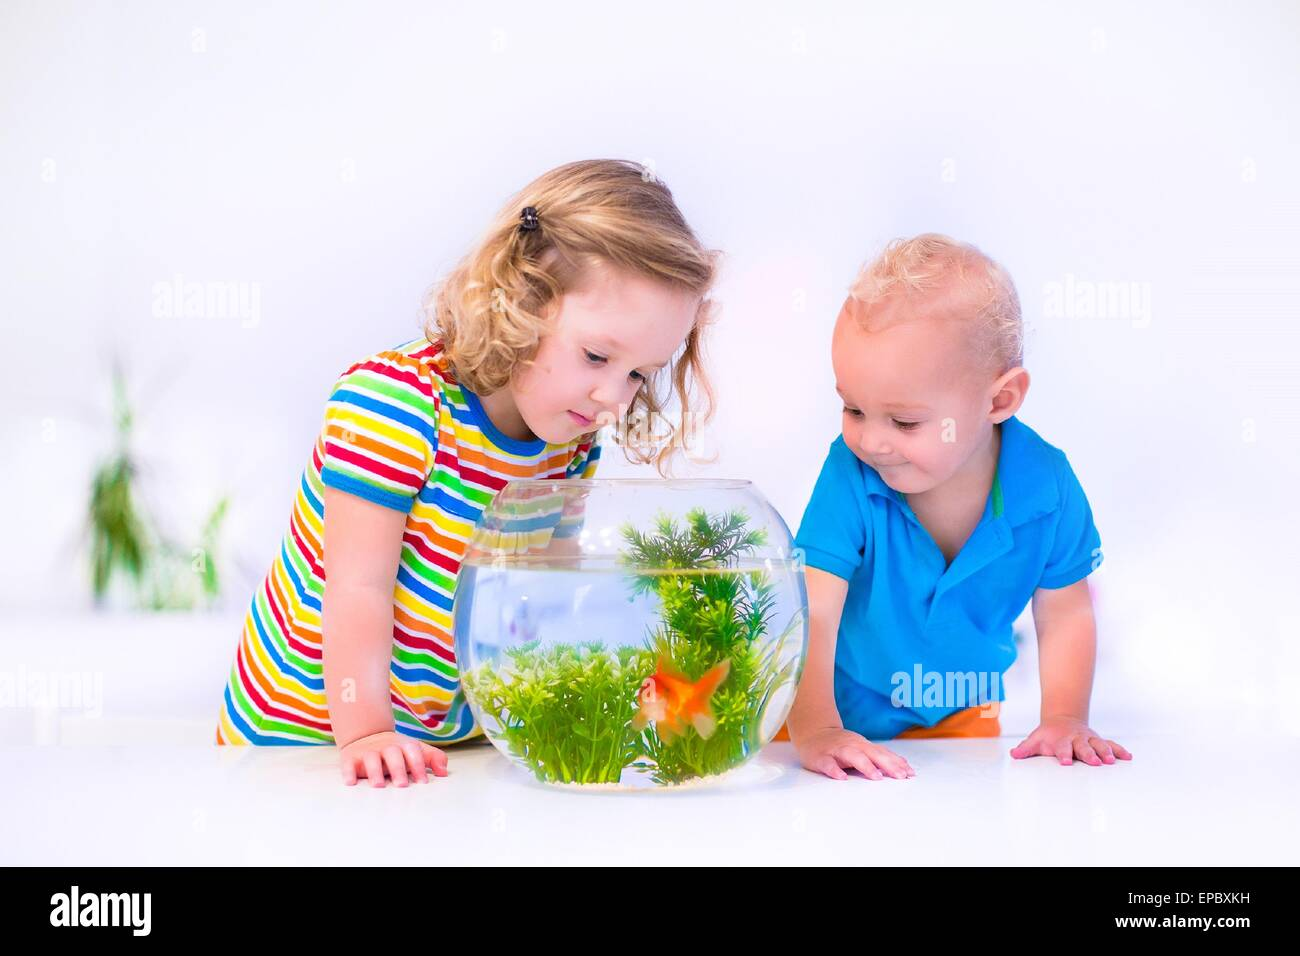 Two children, brother and sister, cute little girl and adorable baby boy feeding a goldfish swimming in a round - Stock Image